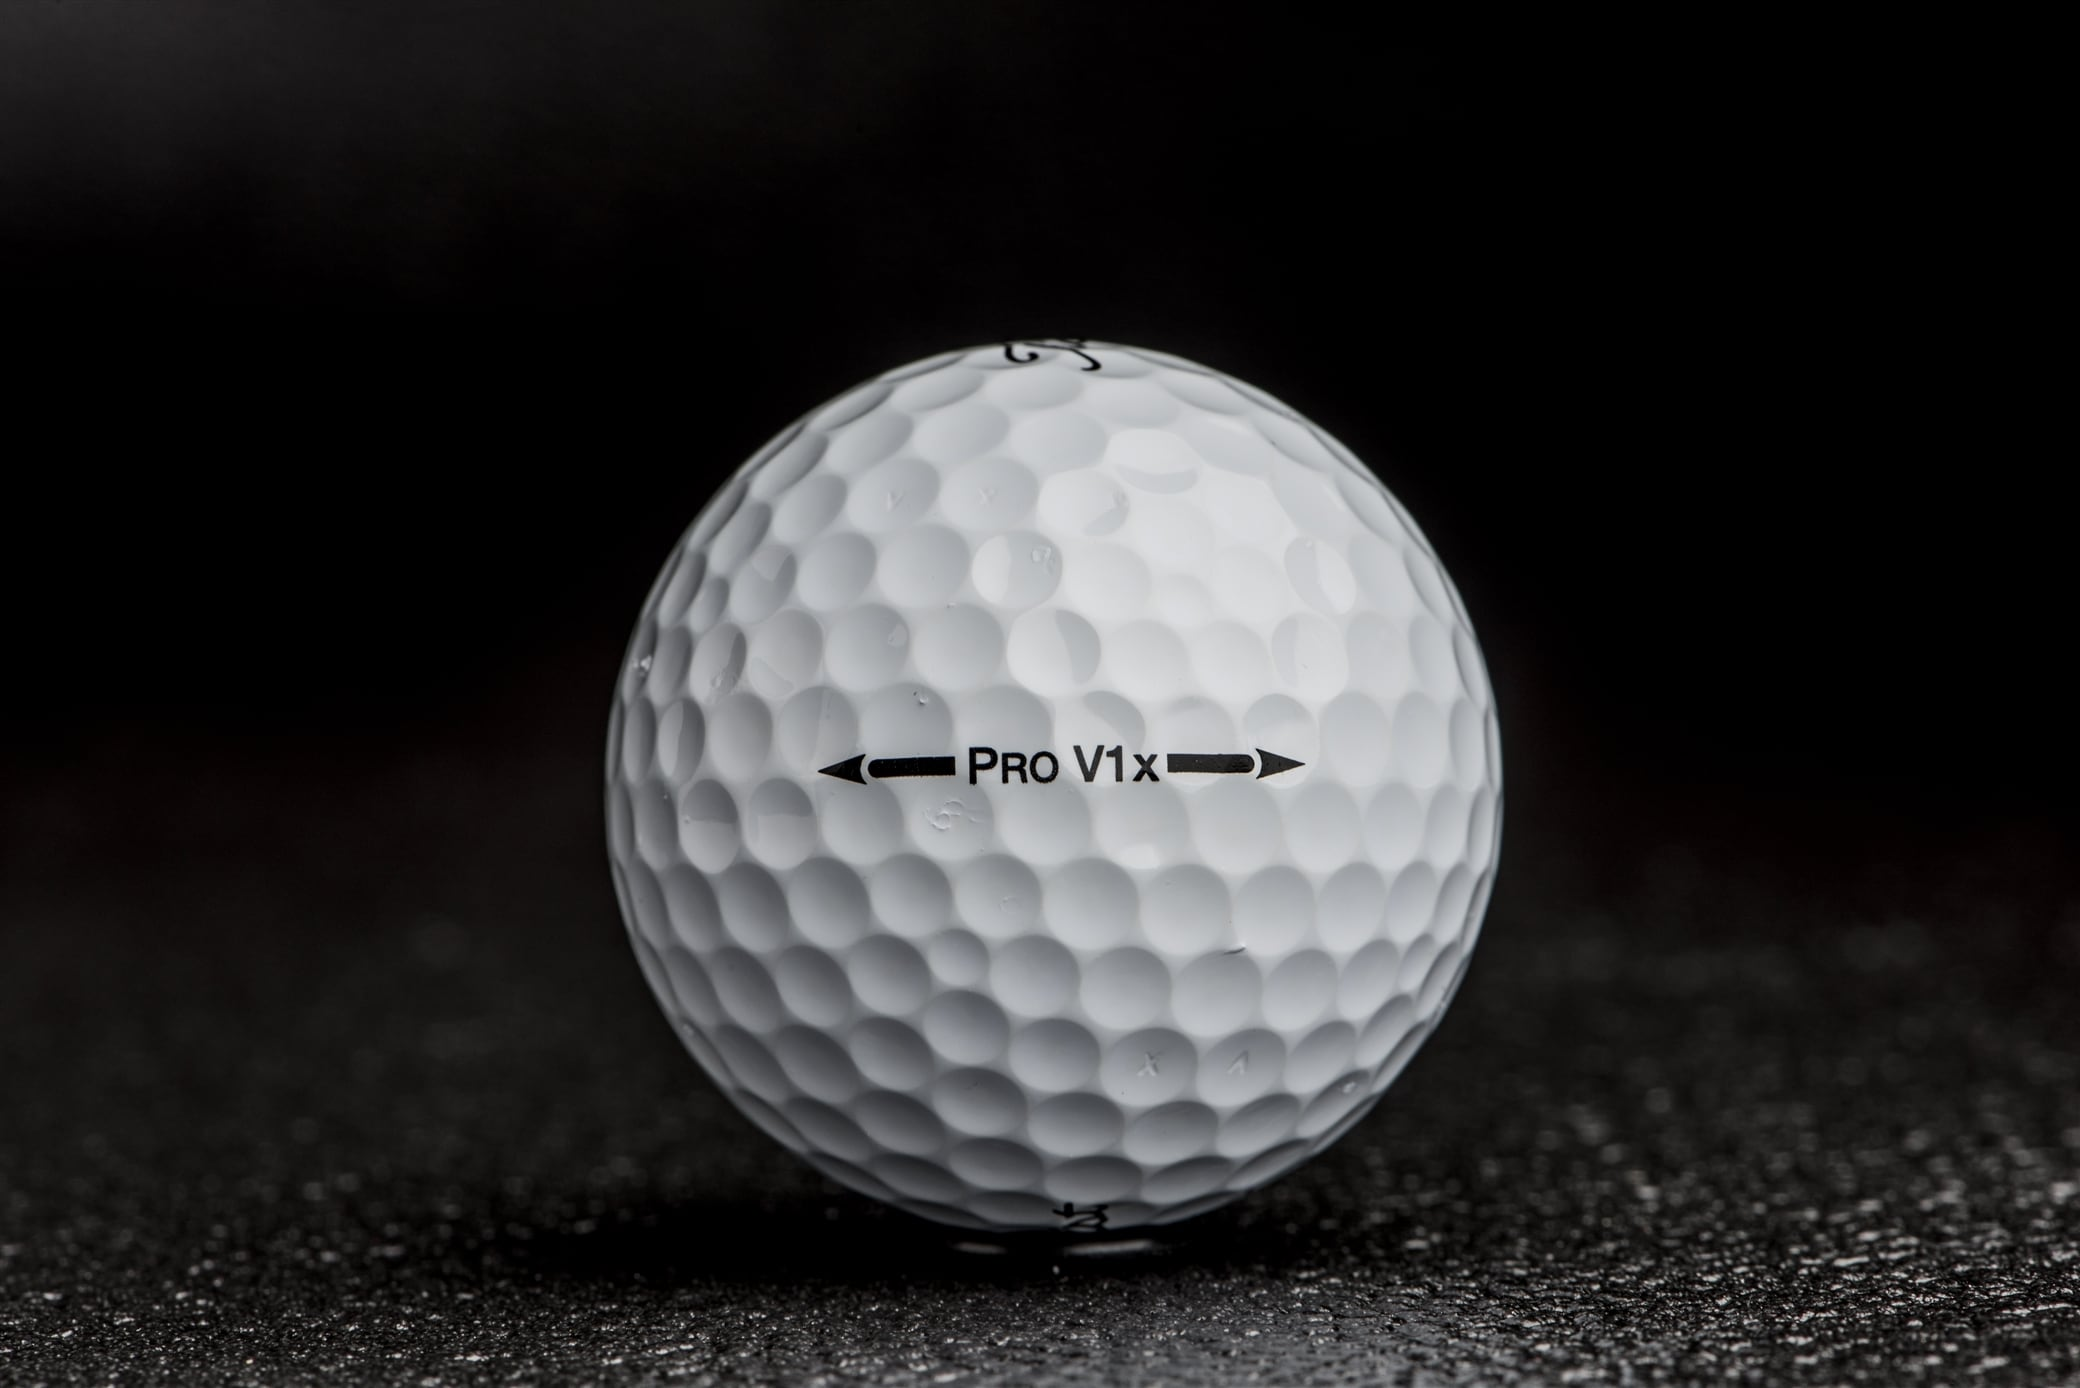 Both the 2007 Pro V1 and Pro V1x (pictured) featured Titleist's A.I.M. sidestamp advancement